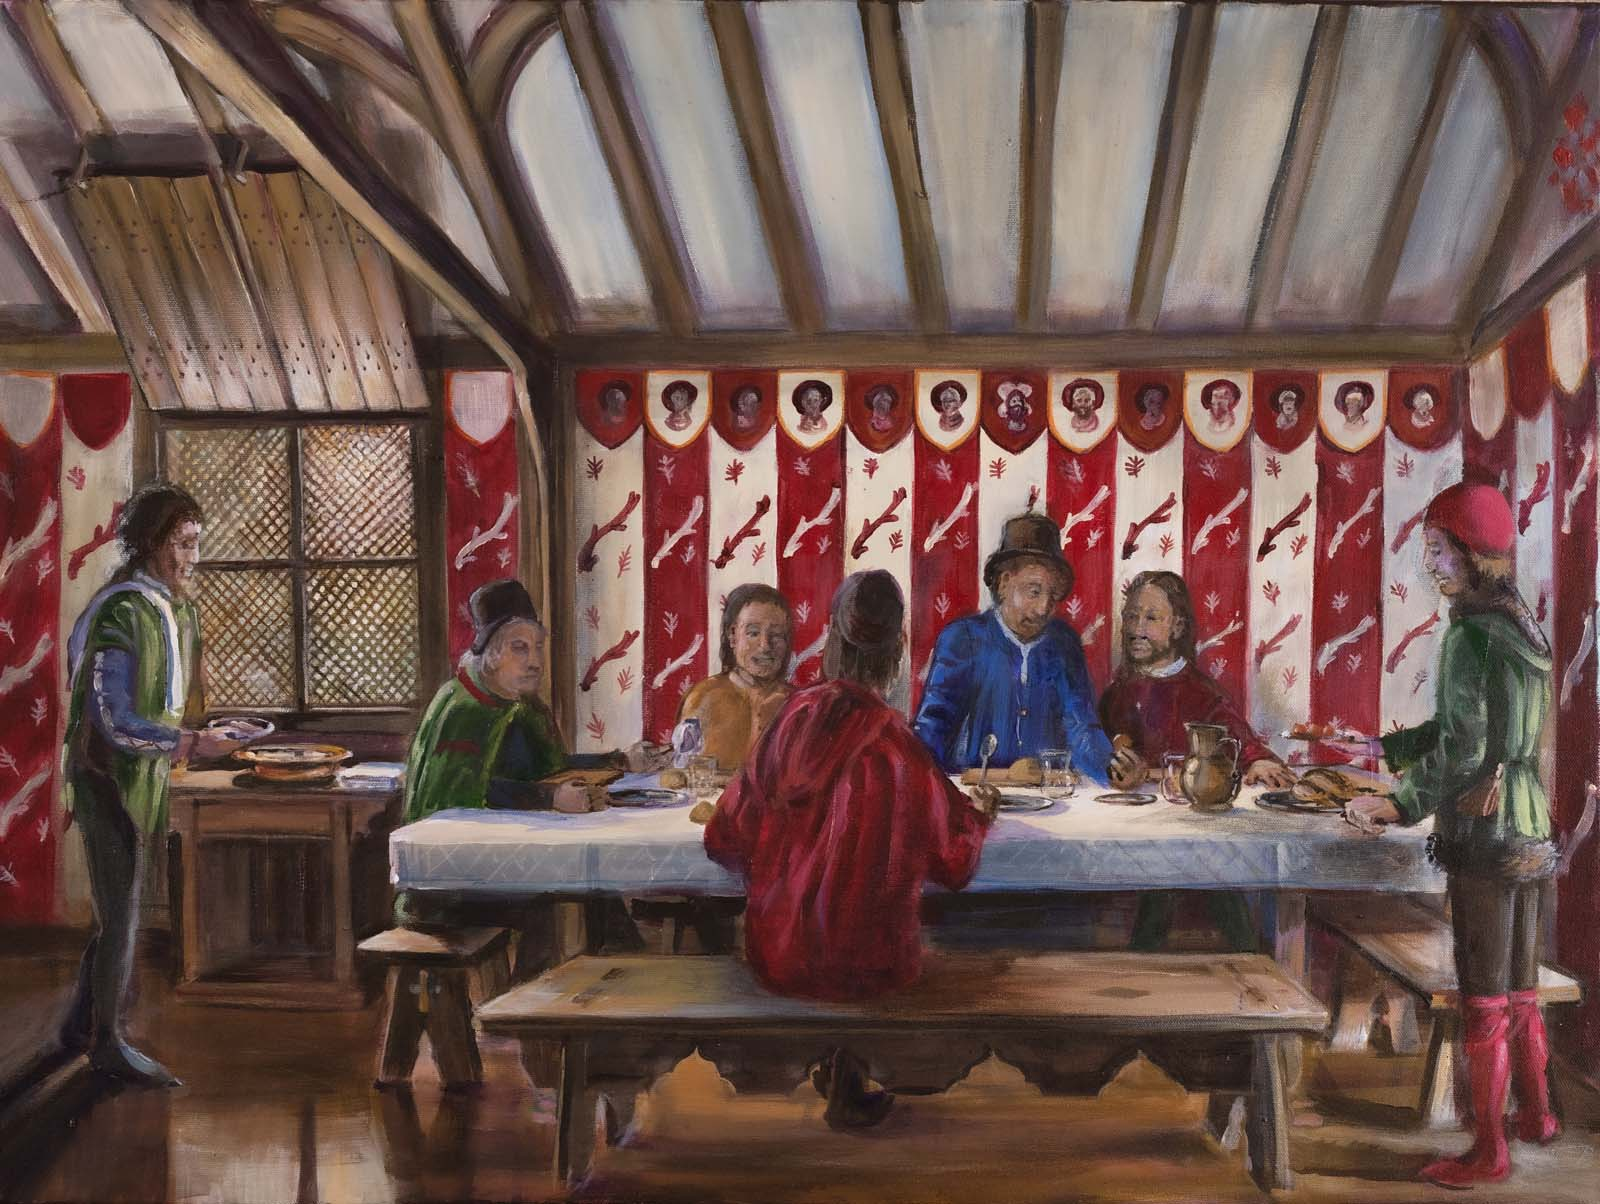 a painting of a group of Tudor or Elizabethan men feasting at a table infront of striped decorated wall